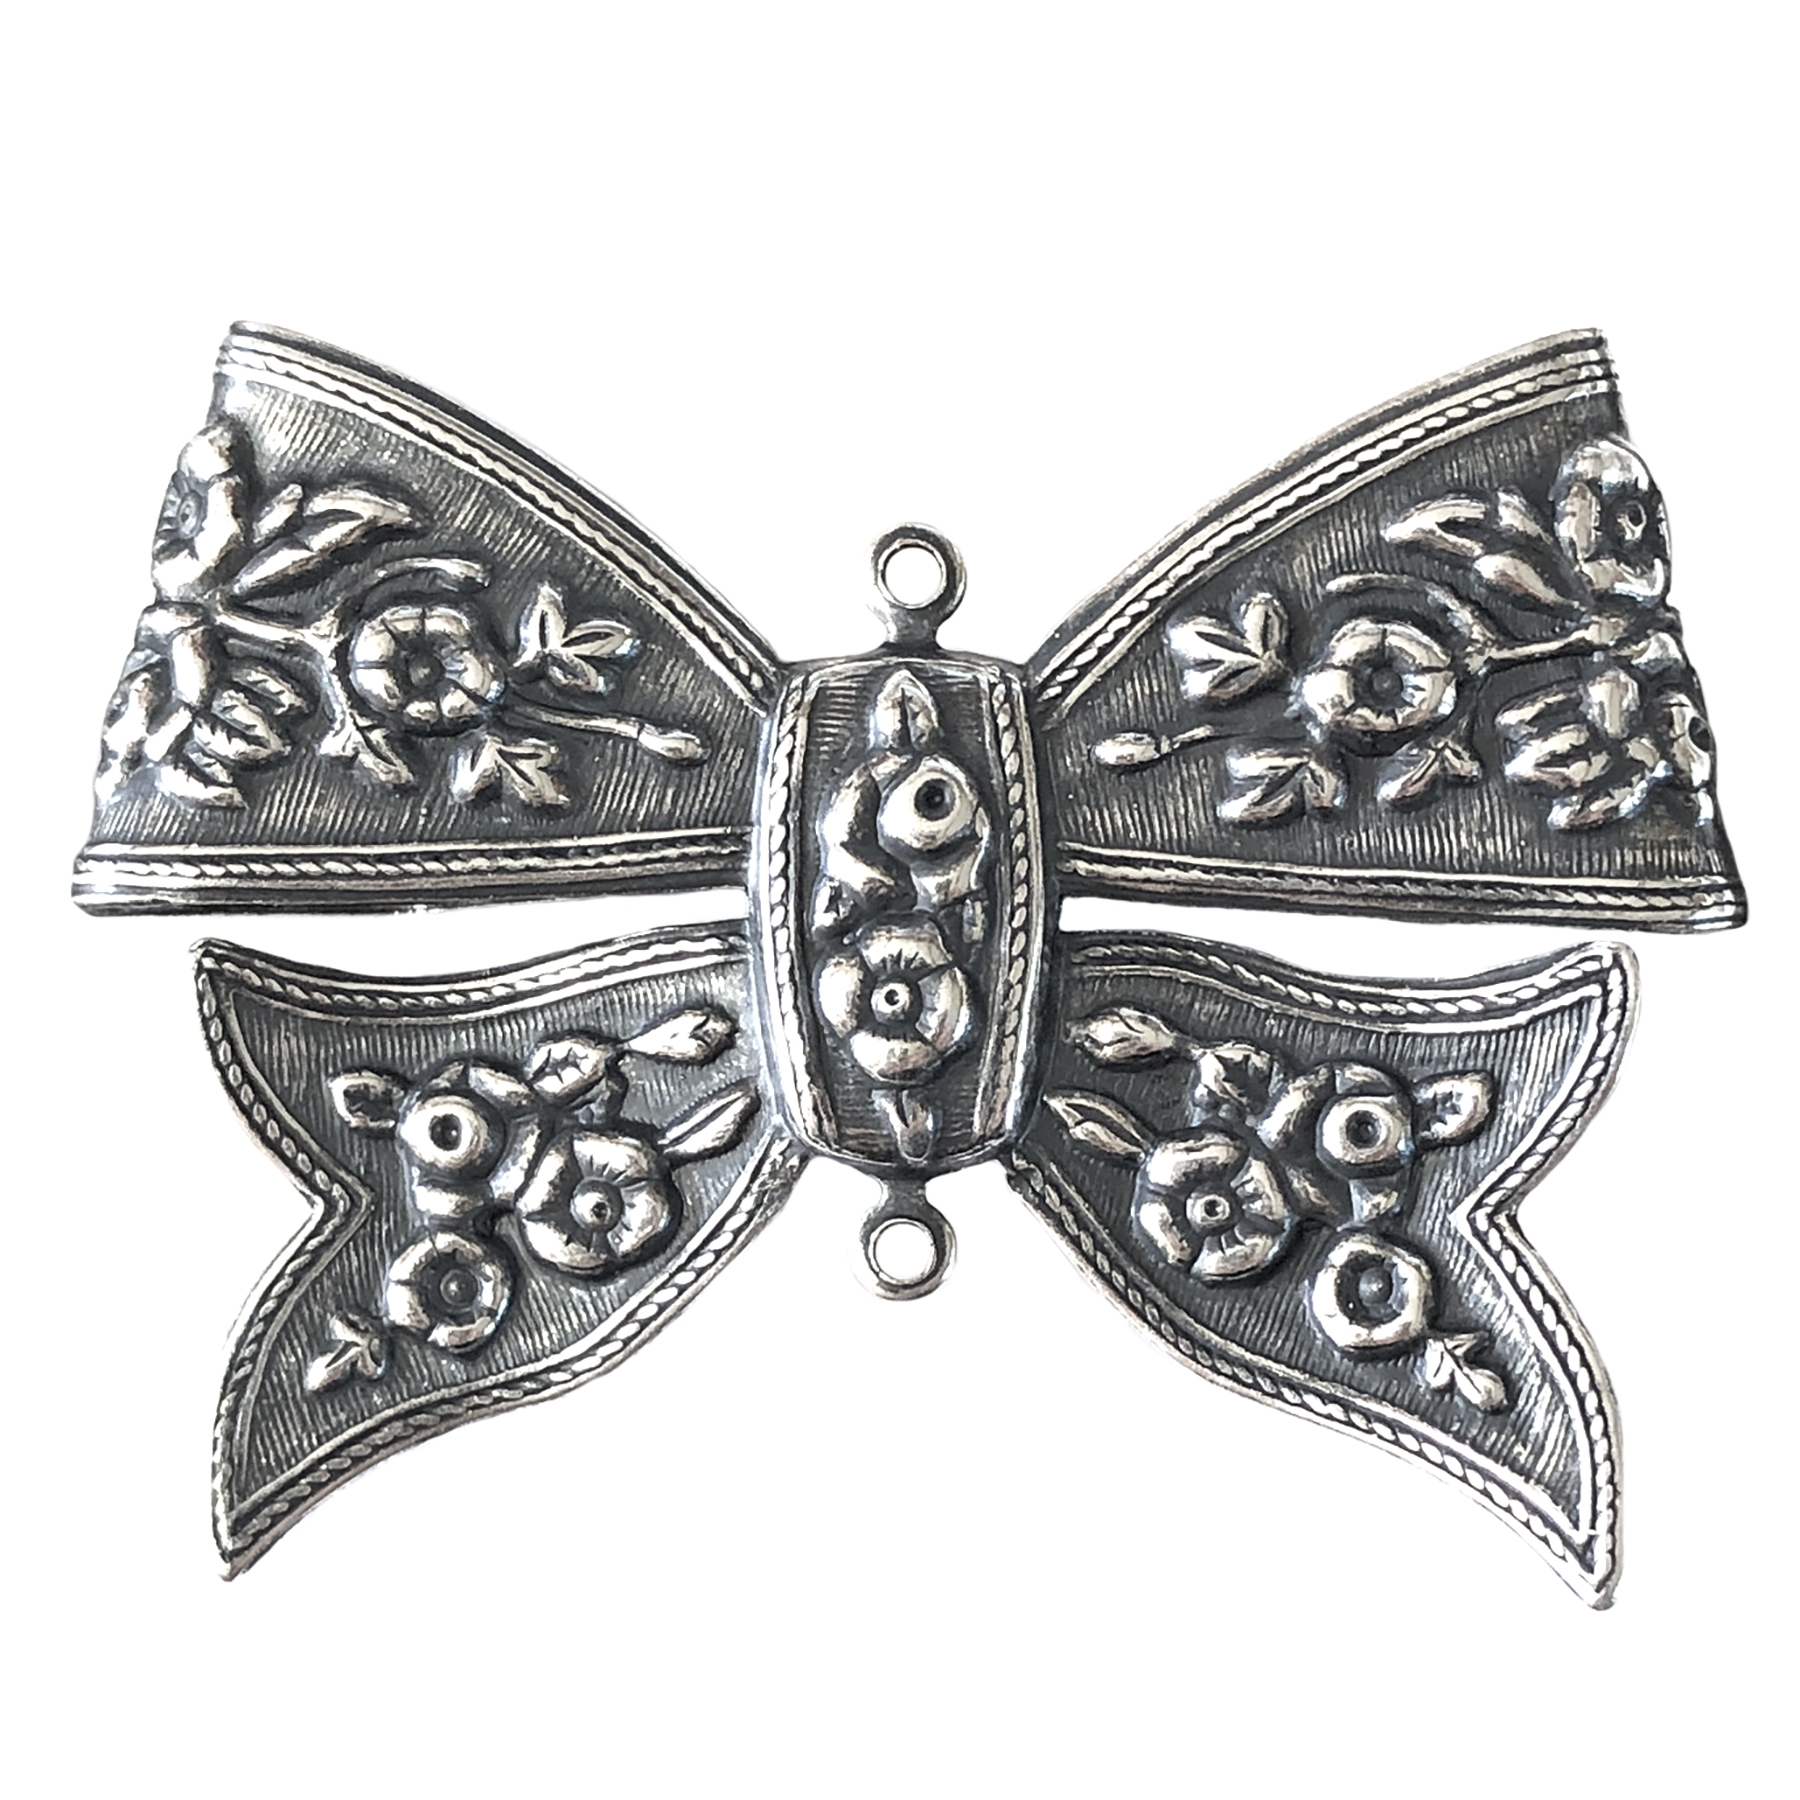 floral design bow, antique silver, connector, folded over, floral design, bow, silver bow, jewelry connector, silverware silverplate, 33x47mm, floral, two connectors, floral bow, centerpiece bow, jewelry making, jewelry supplies, vintage supplies, 06224